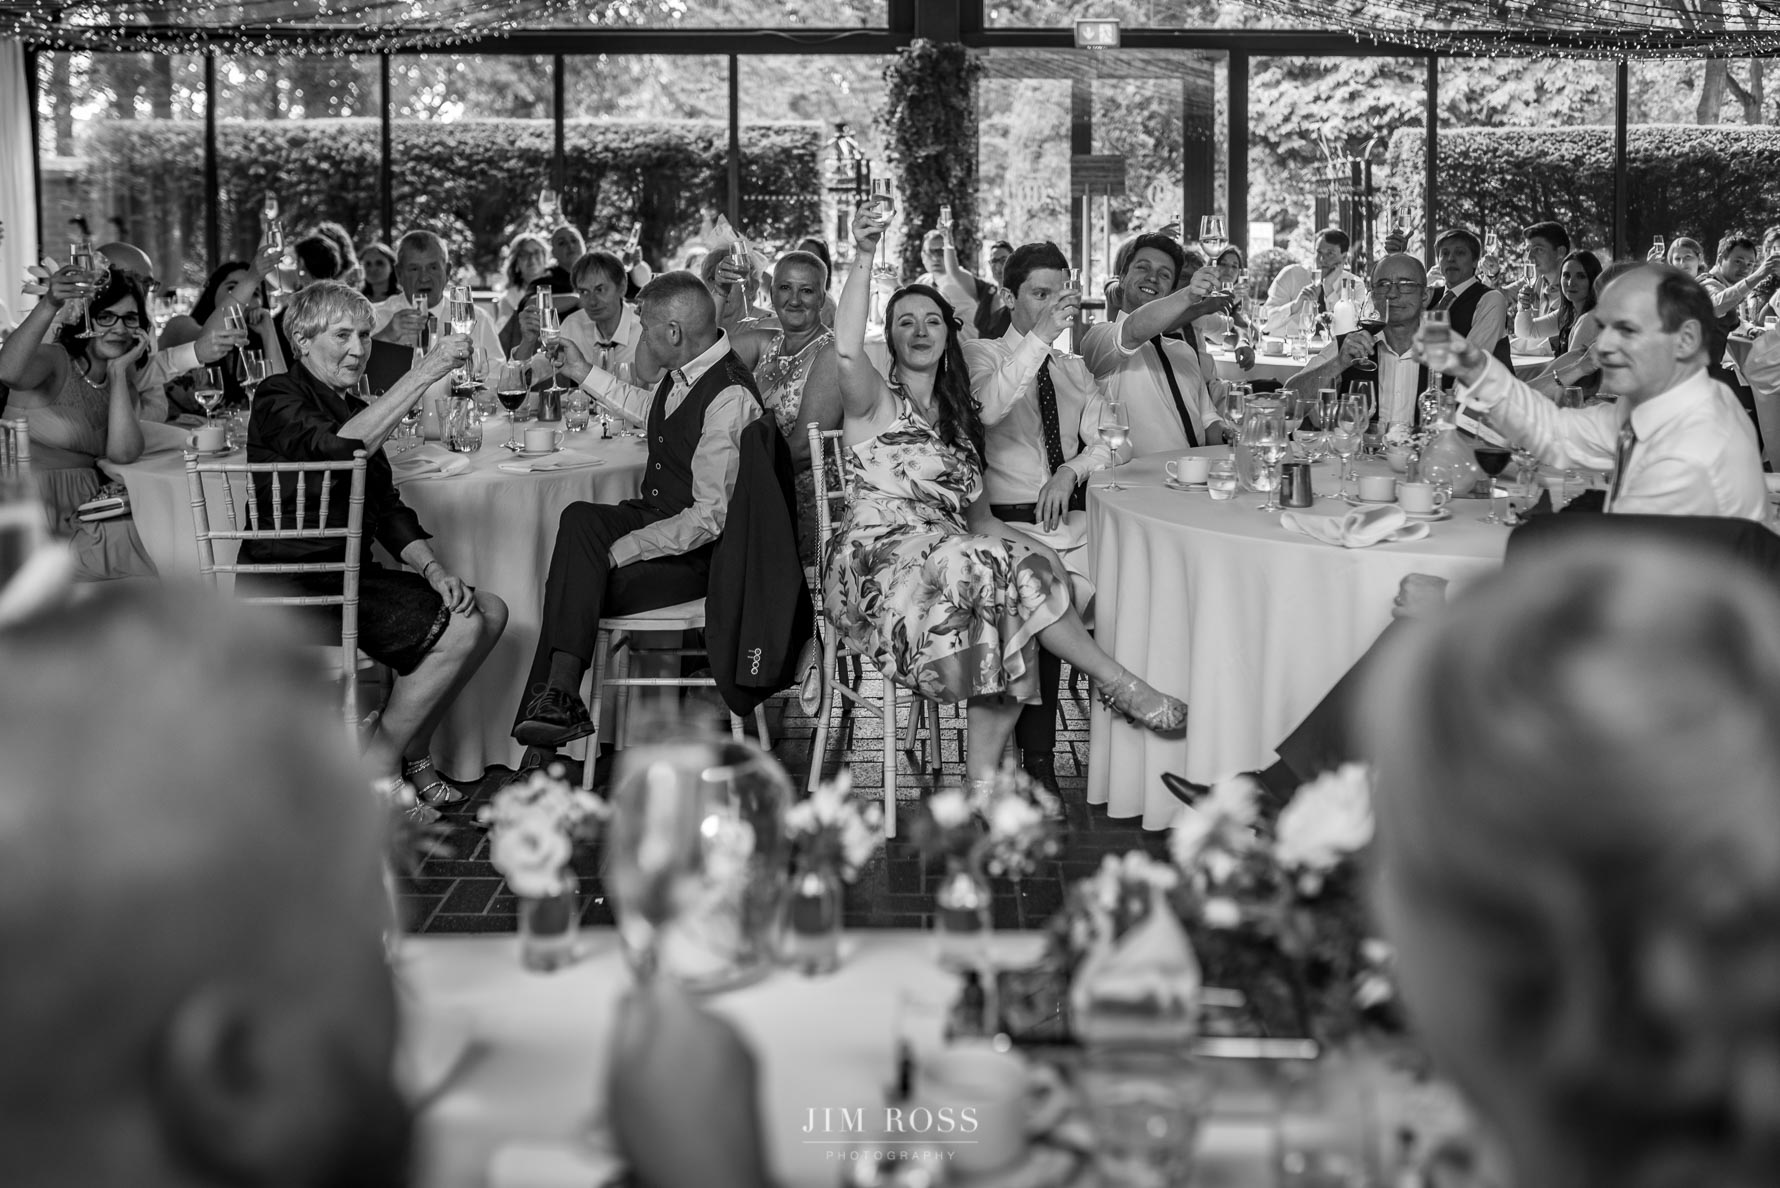 Raising a glass for bride and groom